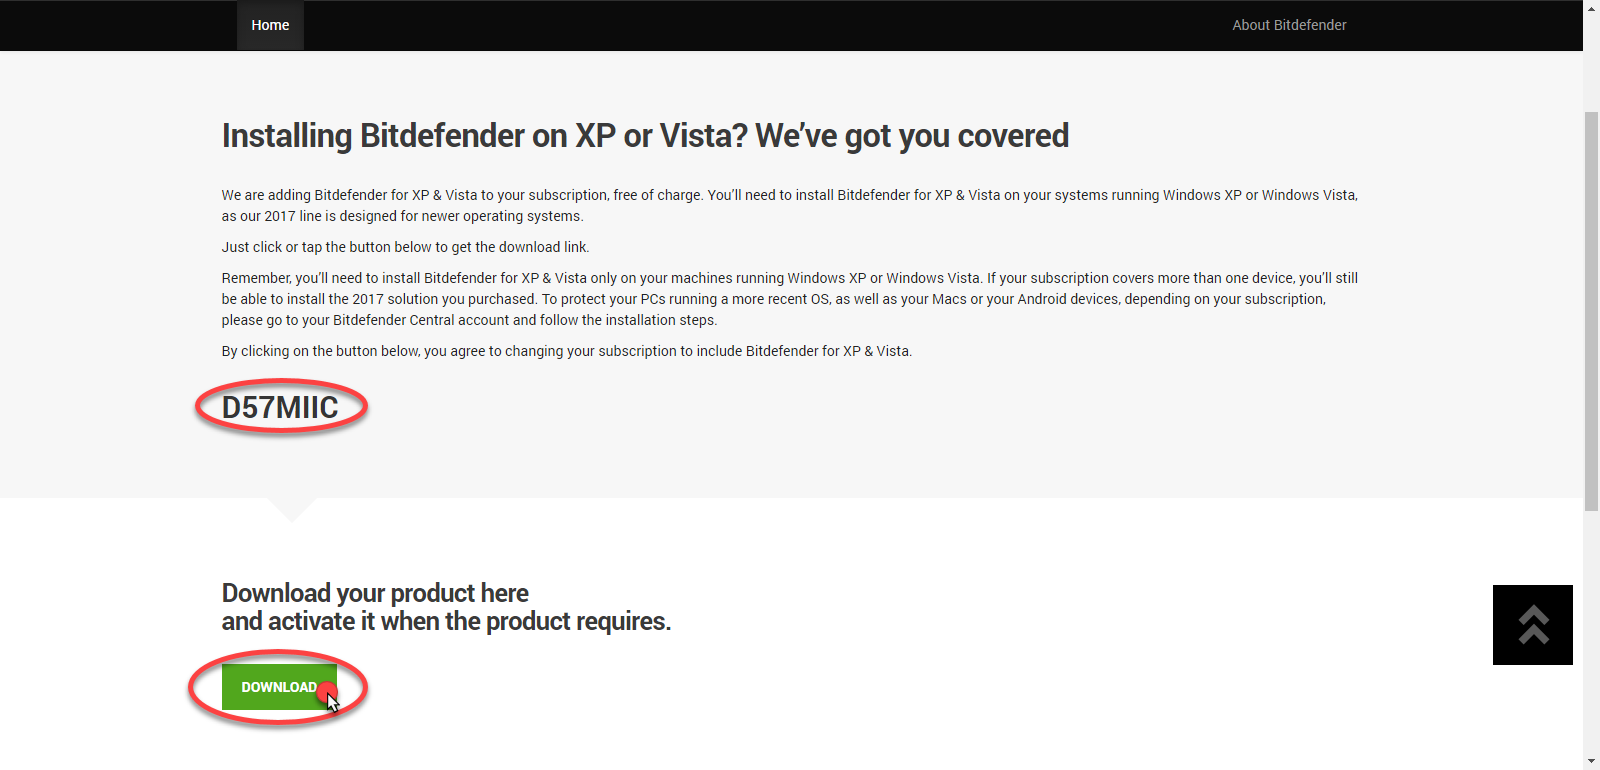 How to install Bitdefender on Windows XP and Windows Vista?